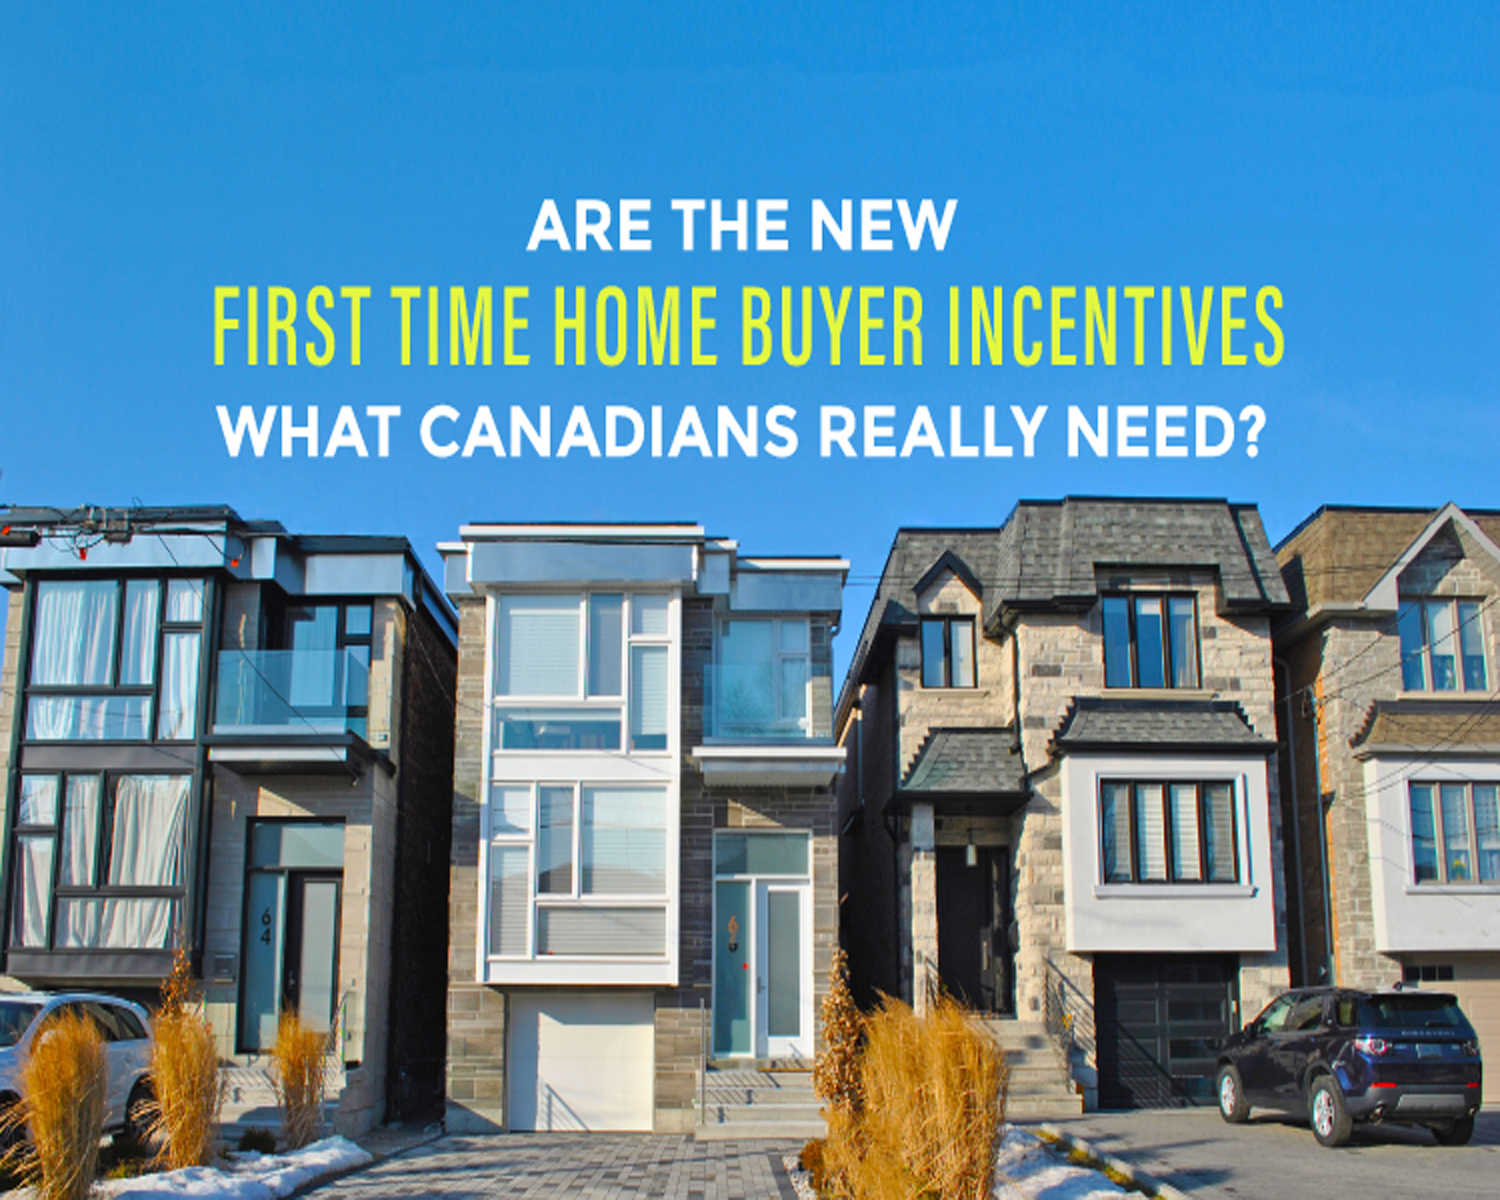 Canadian First-Time Home Buyer Incentive